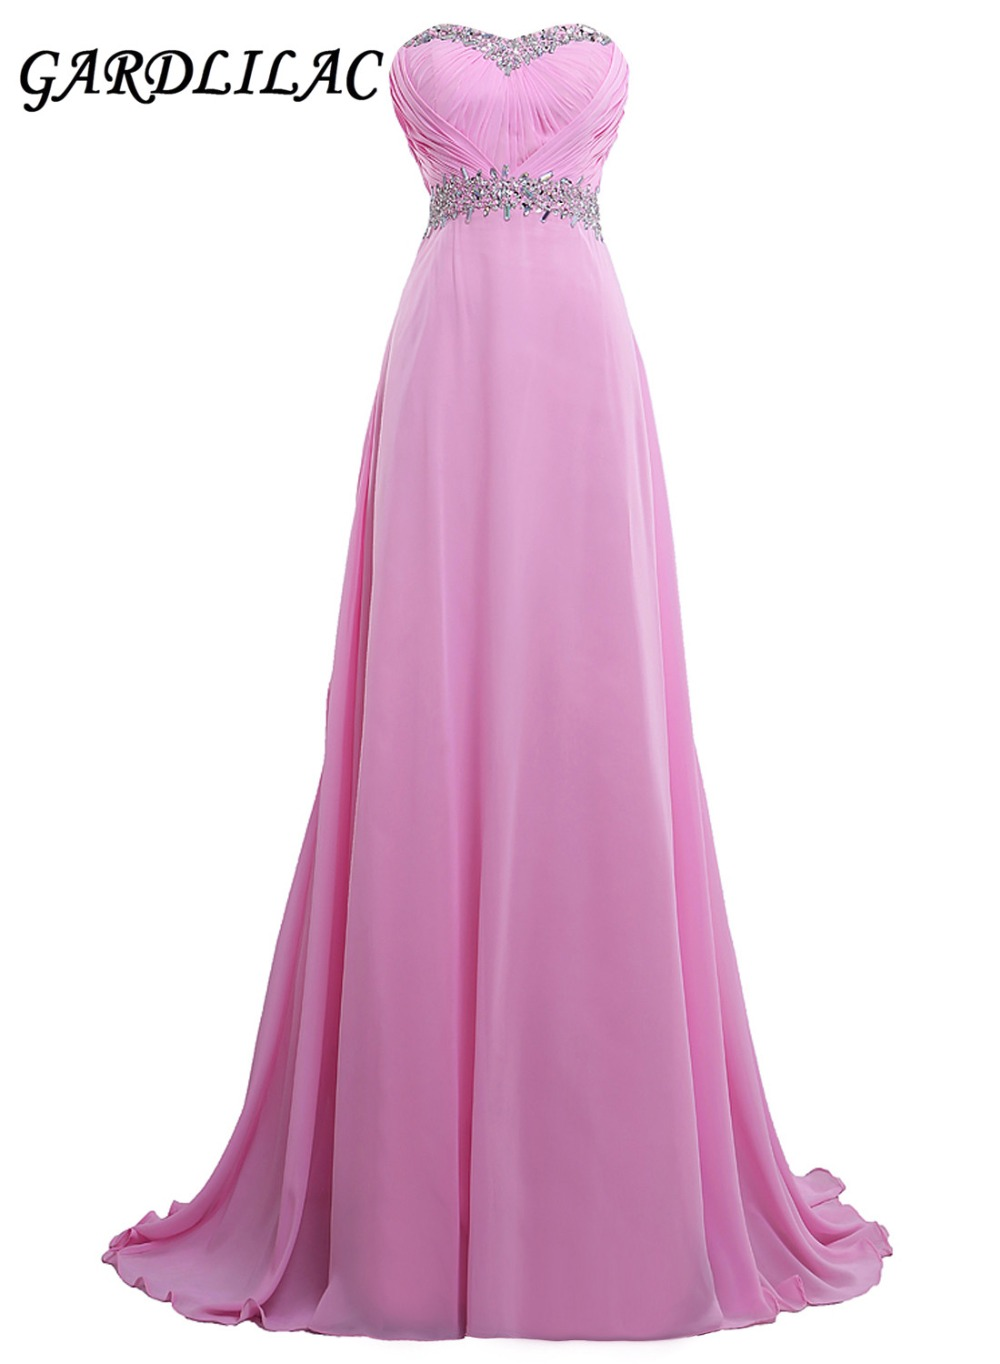 New Sweetheart Pink Long Bridesmaid Dresses 2019 Plus Storlek Chiffon Bröllopsfest Kappa Med Pärlor Maid of Honor Prom Kjole